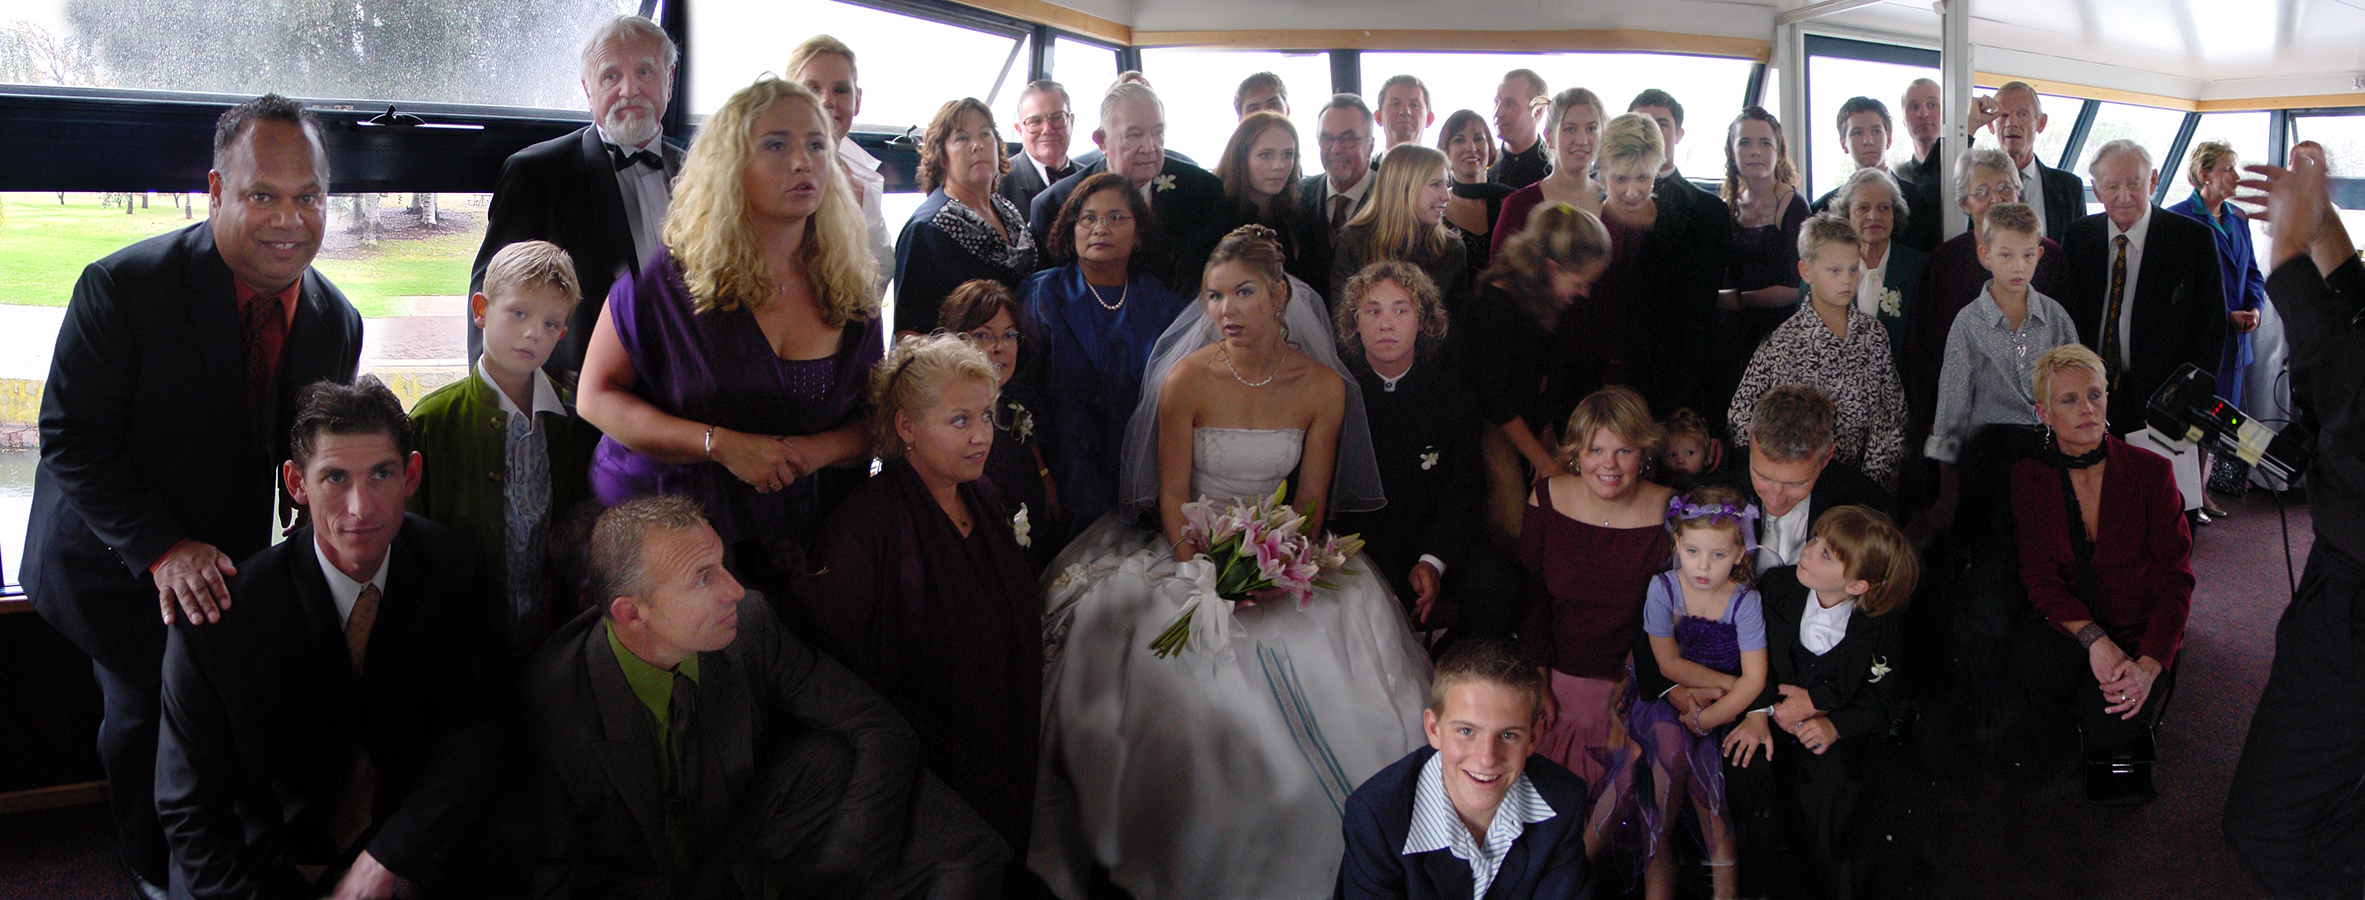 The Wedding Boat